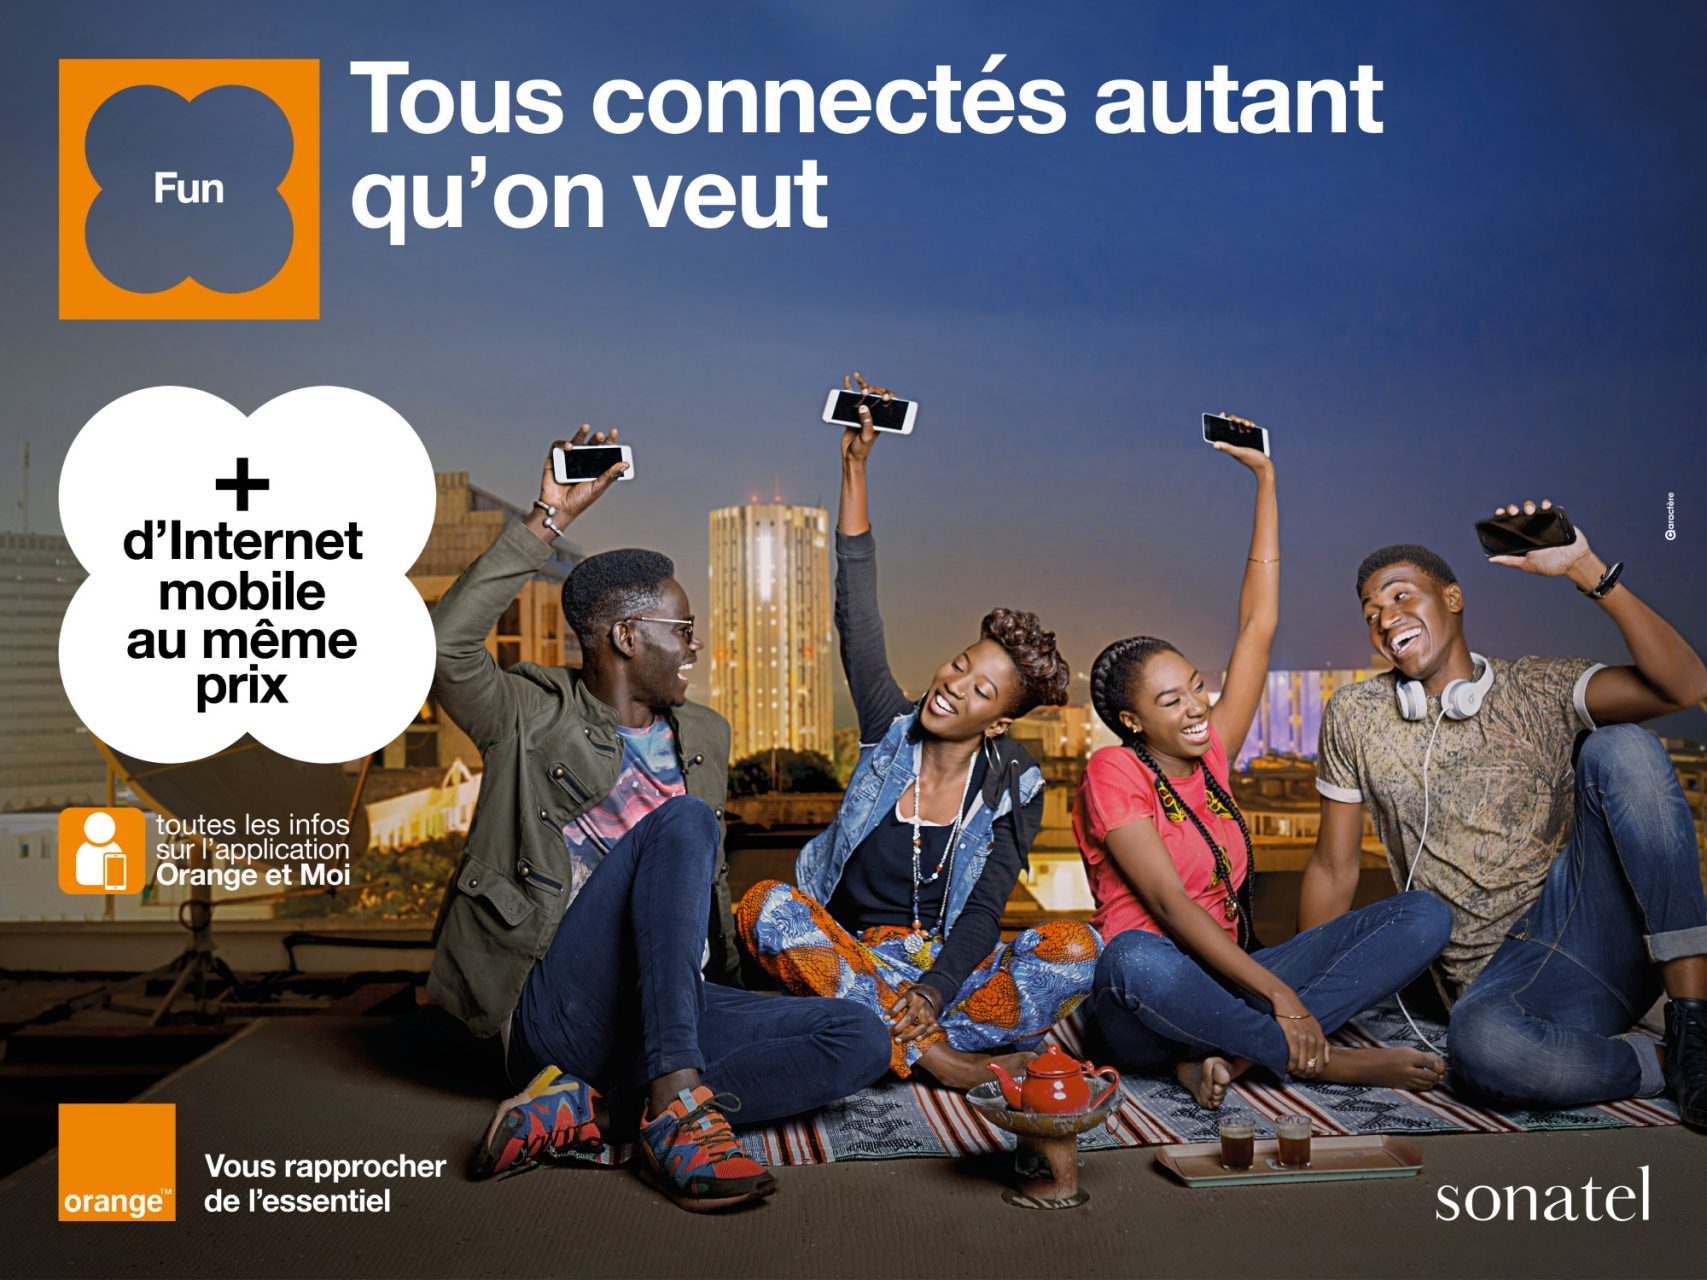 Campagne Pub Orange Refonte Internet